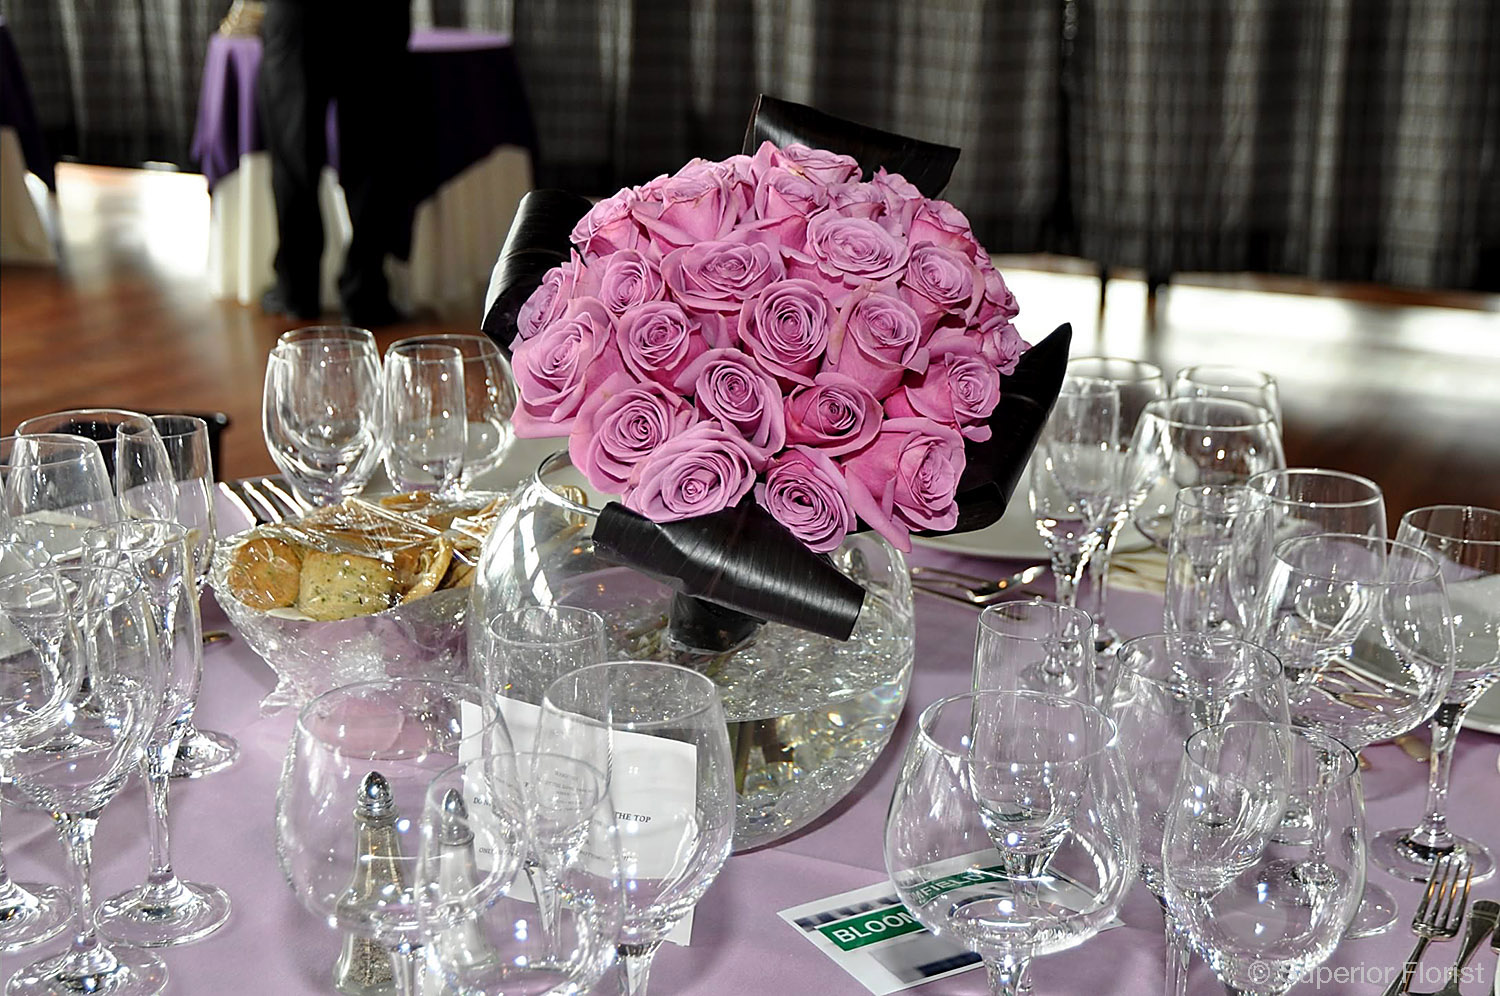 Superior Florist – Centerpieces:  Angled cluster of lavender roses and folded Ti leaves. Large fish bowl vase with clear, glass gems in bottom.